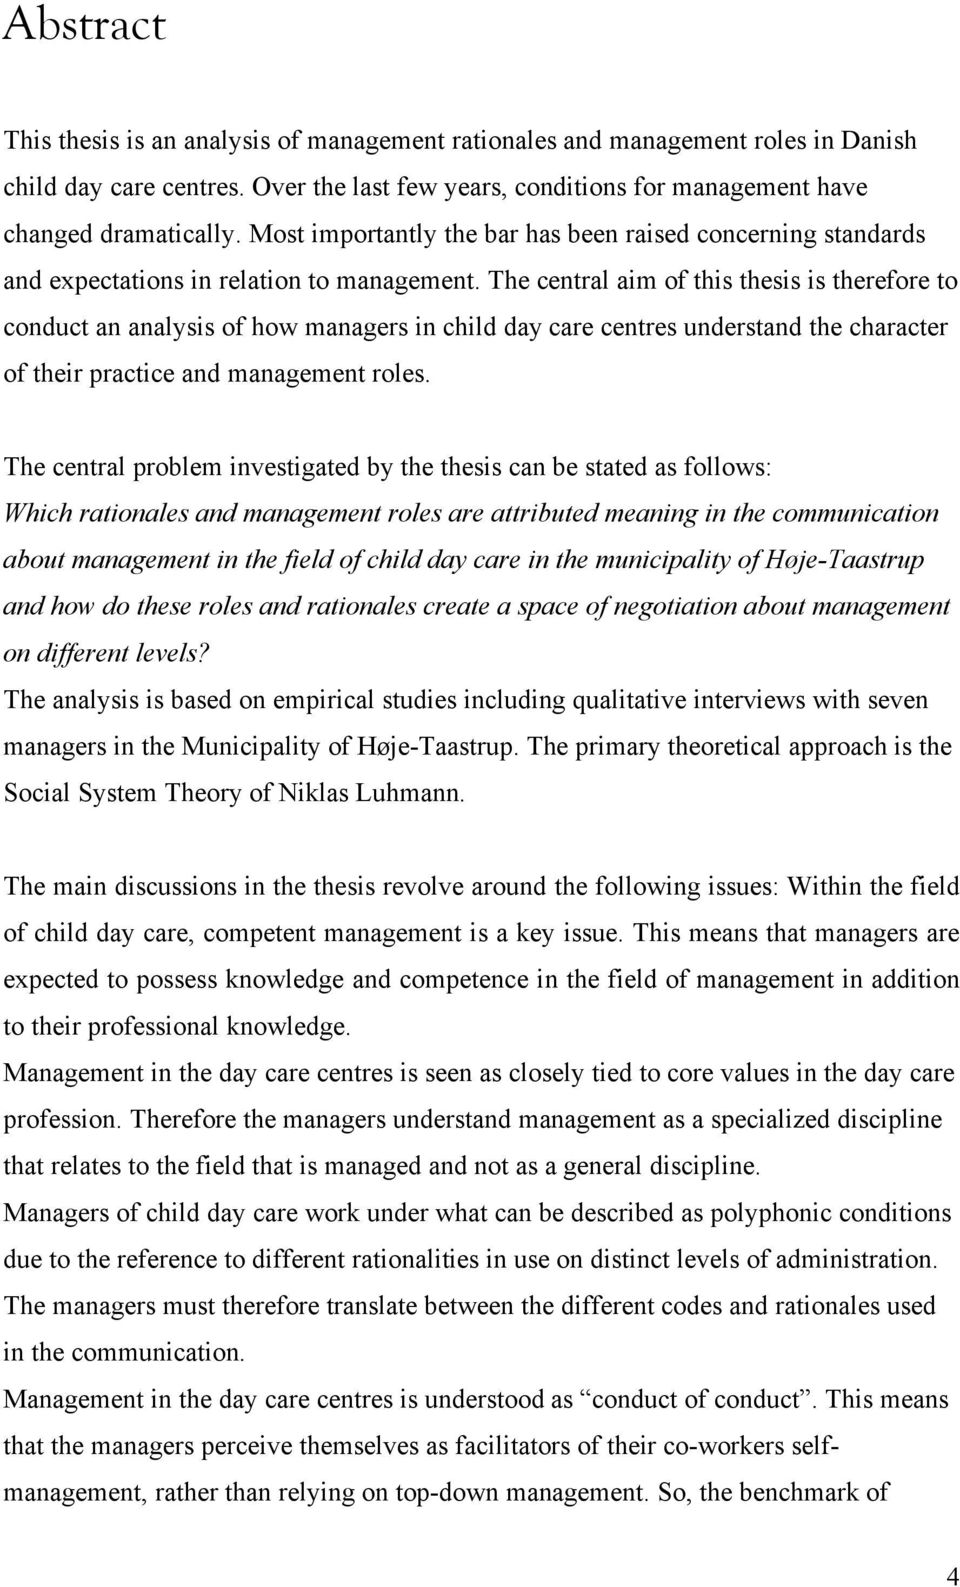 The central aim of this thesis is therefore to conduct an analysis of how managers in child day care centres understand the character of their practice and management roles.